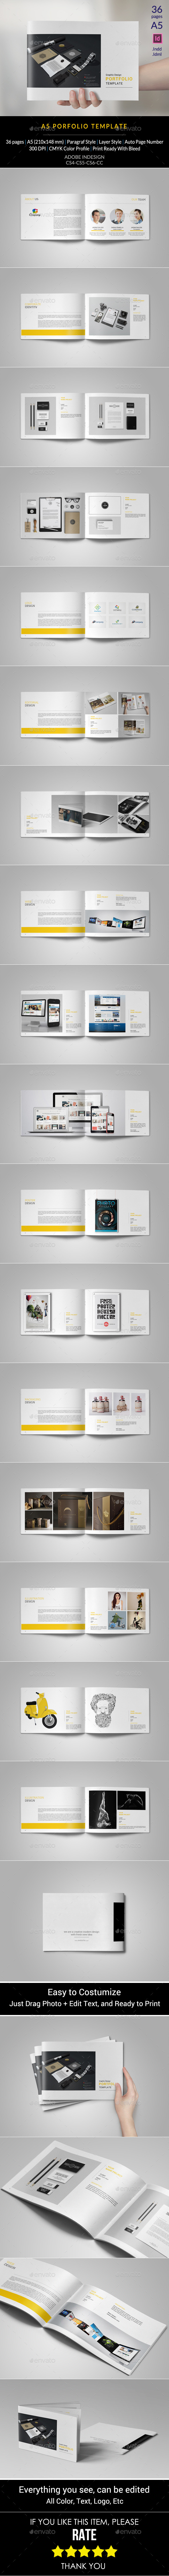 GraphicRiver A5 Portfolio Template 11458895